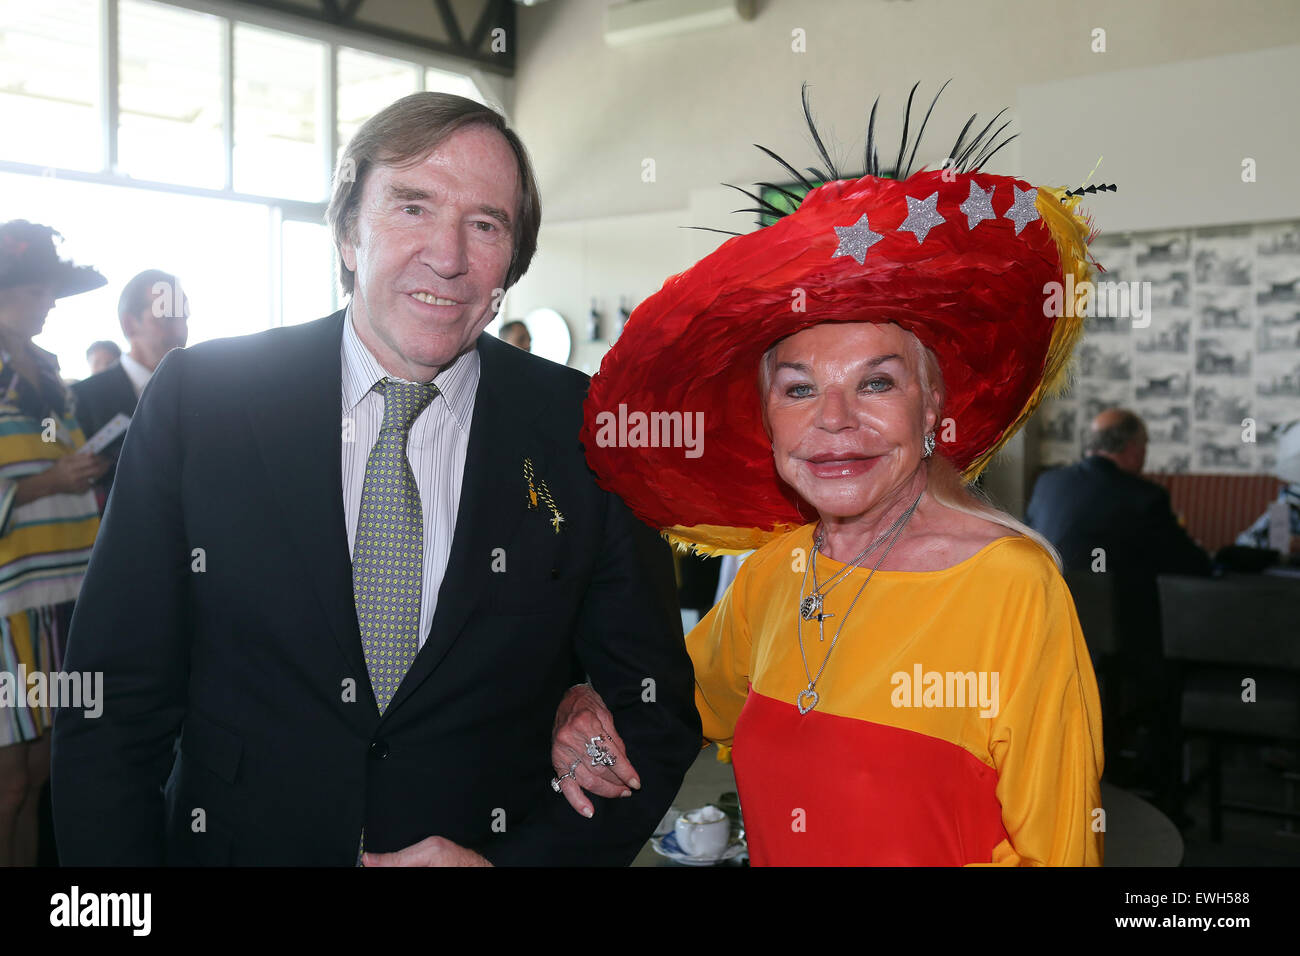 Iffezheim, Germany, Guenter Netzer, media entrepreneur and television commentator and Lilly Claire Saran - Stock Image